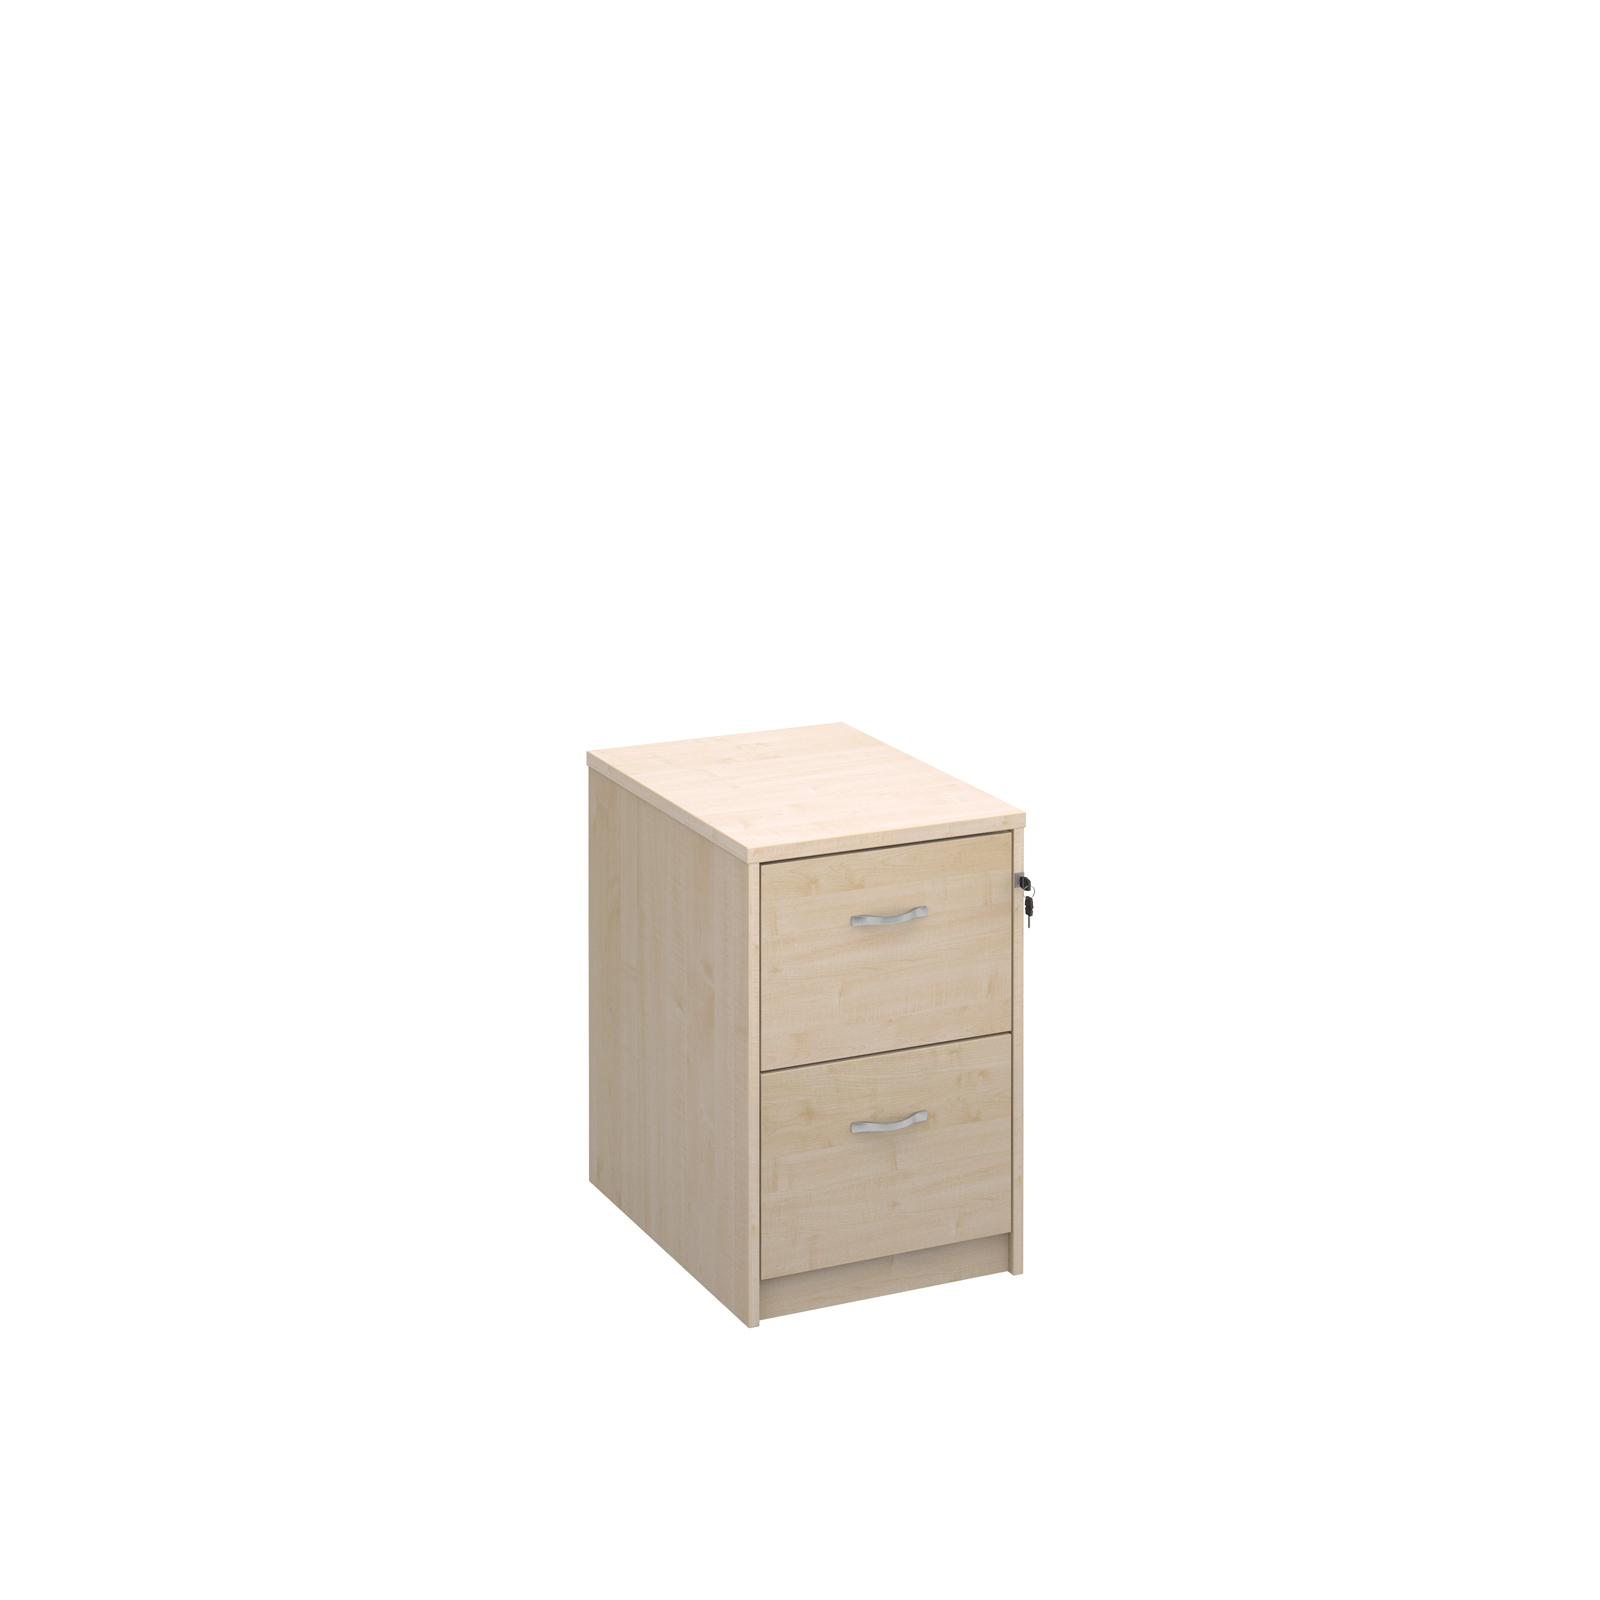 file s cabinets top in reviews best buyer guides two filing drawer cabinet